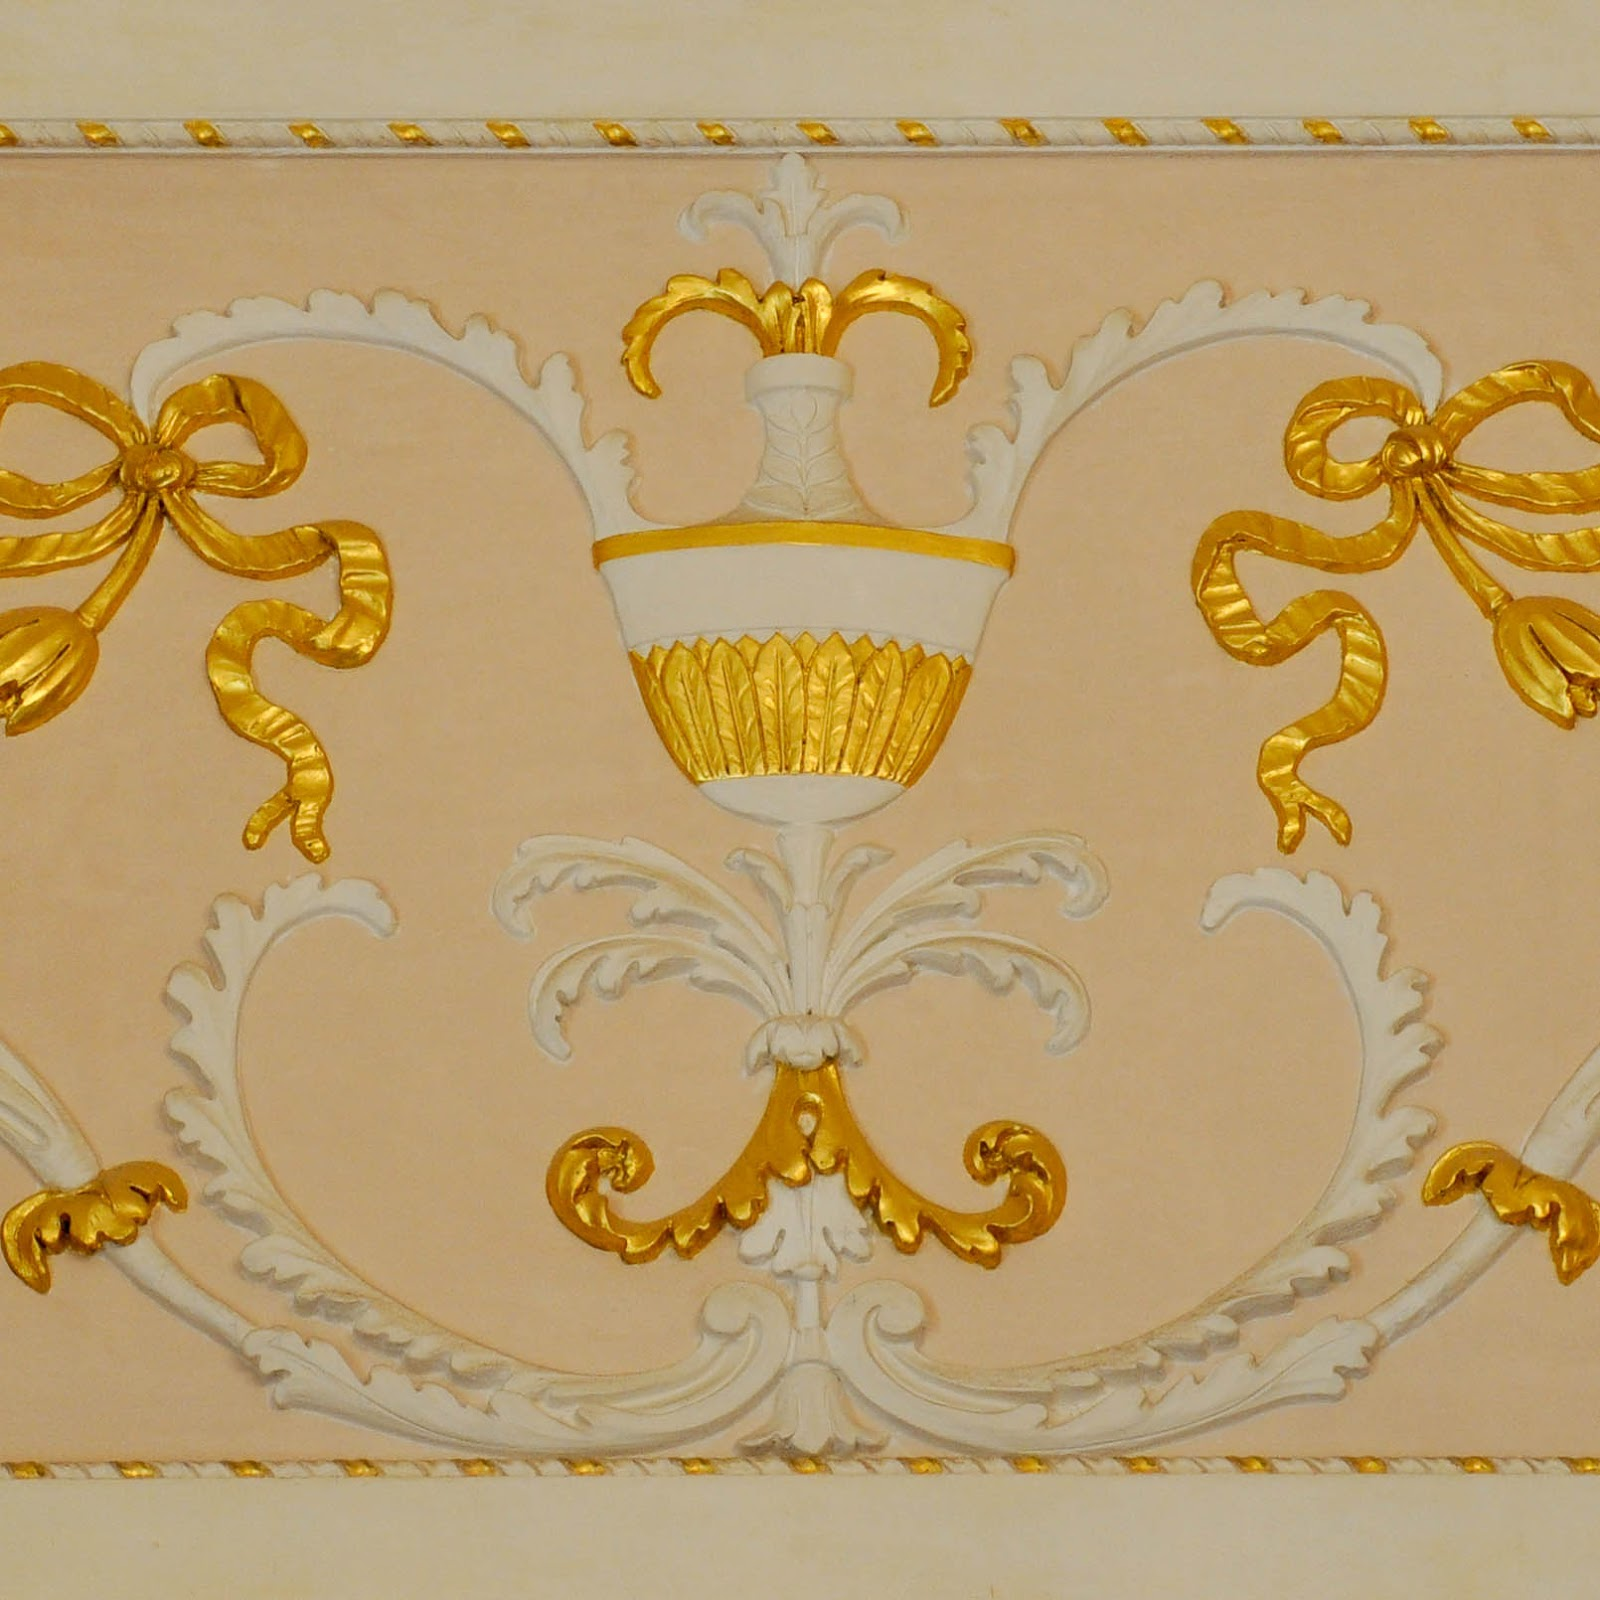 Gold detail on the wall, La Fenice, Venice, Italy